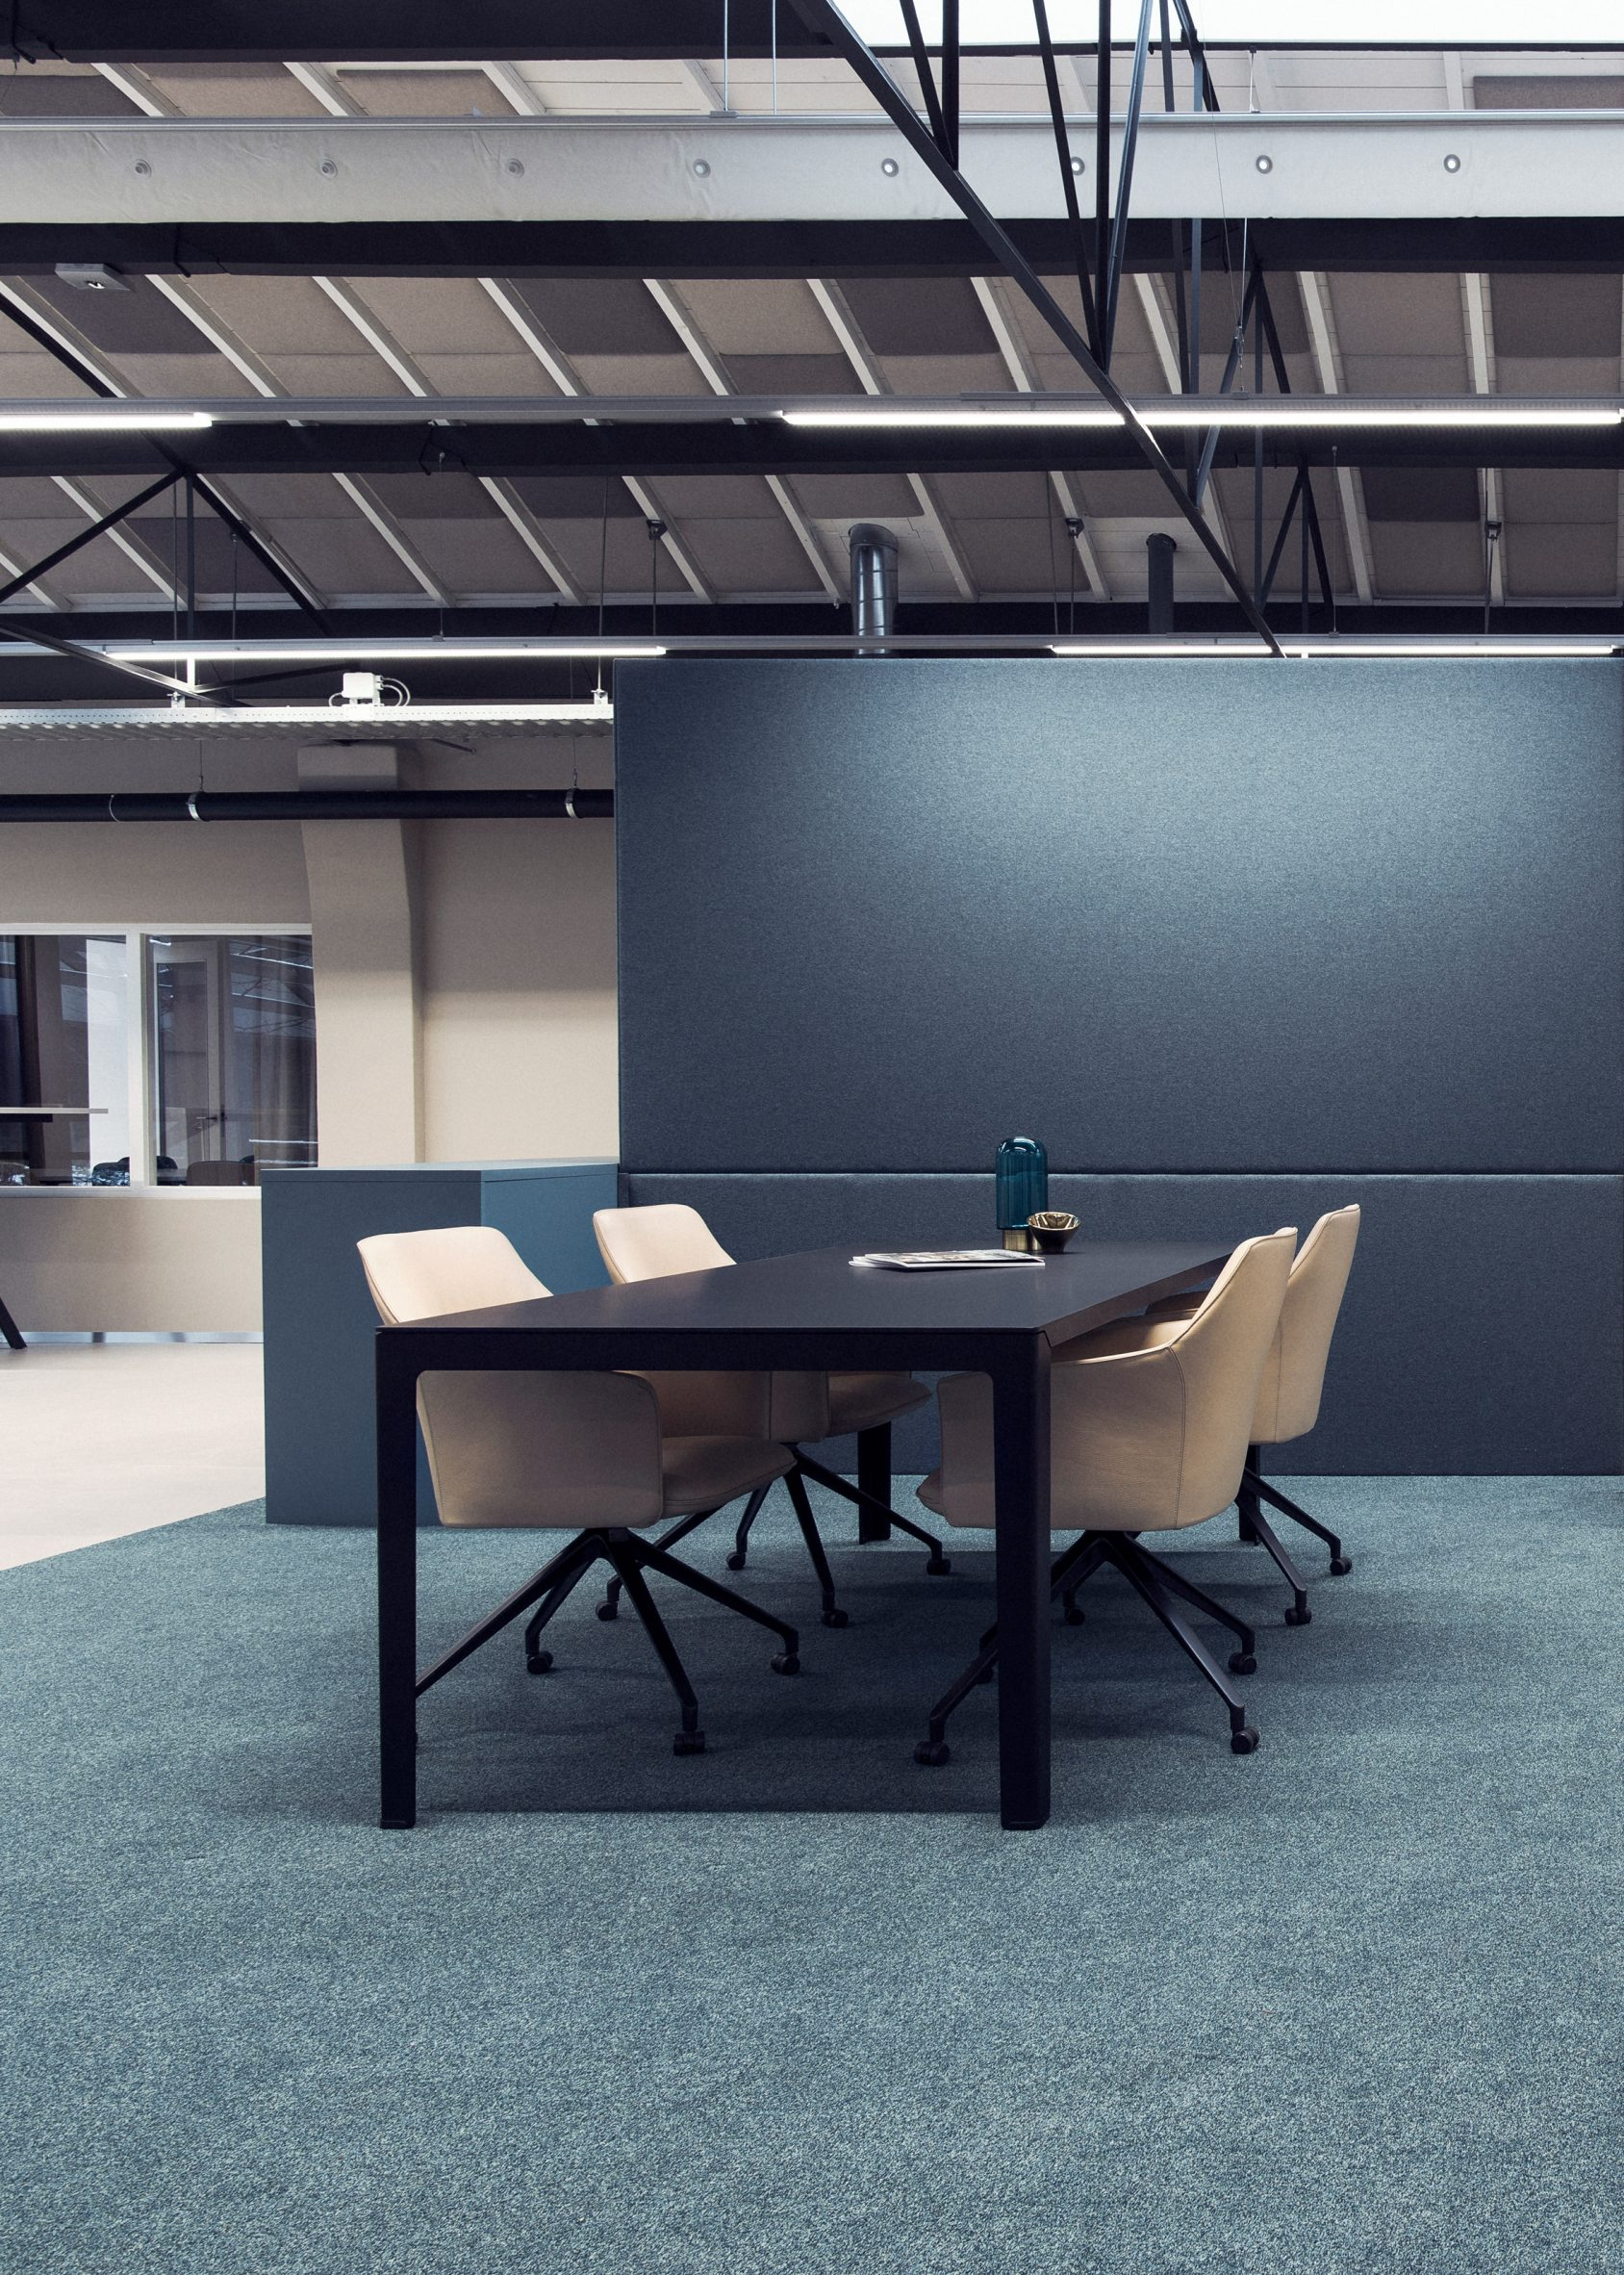 Four LXR671 armchairs in beige surrounding a black desk situated in an office setting